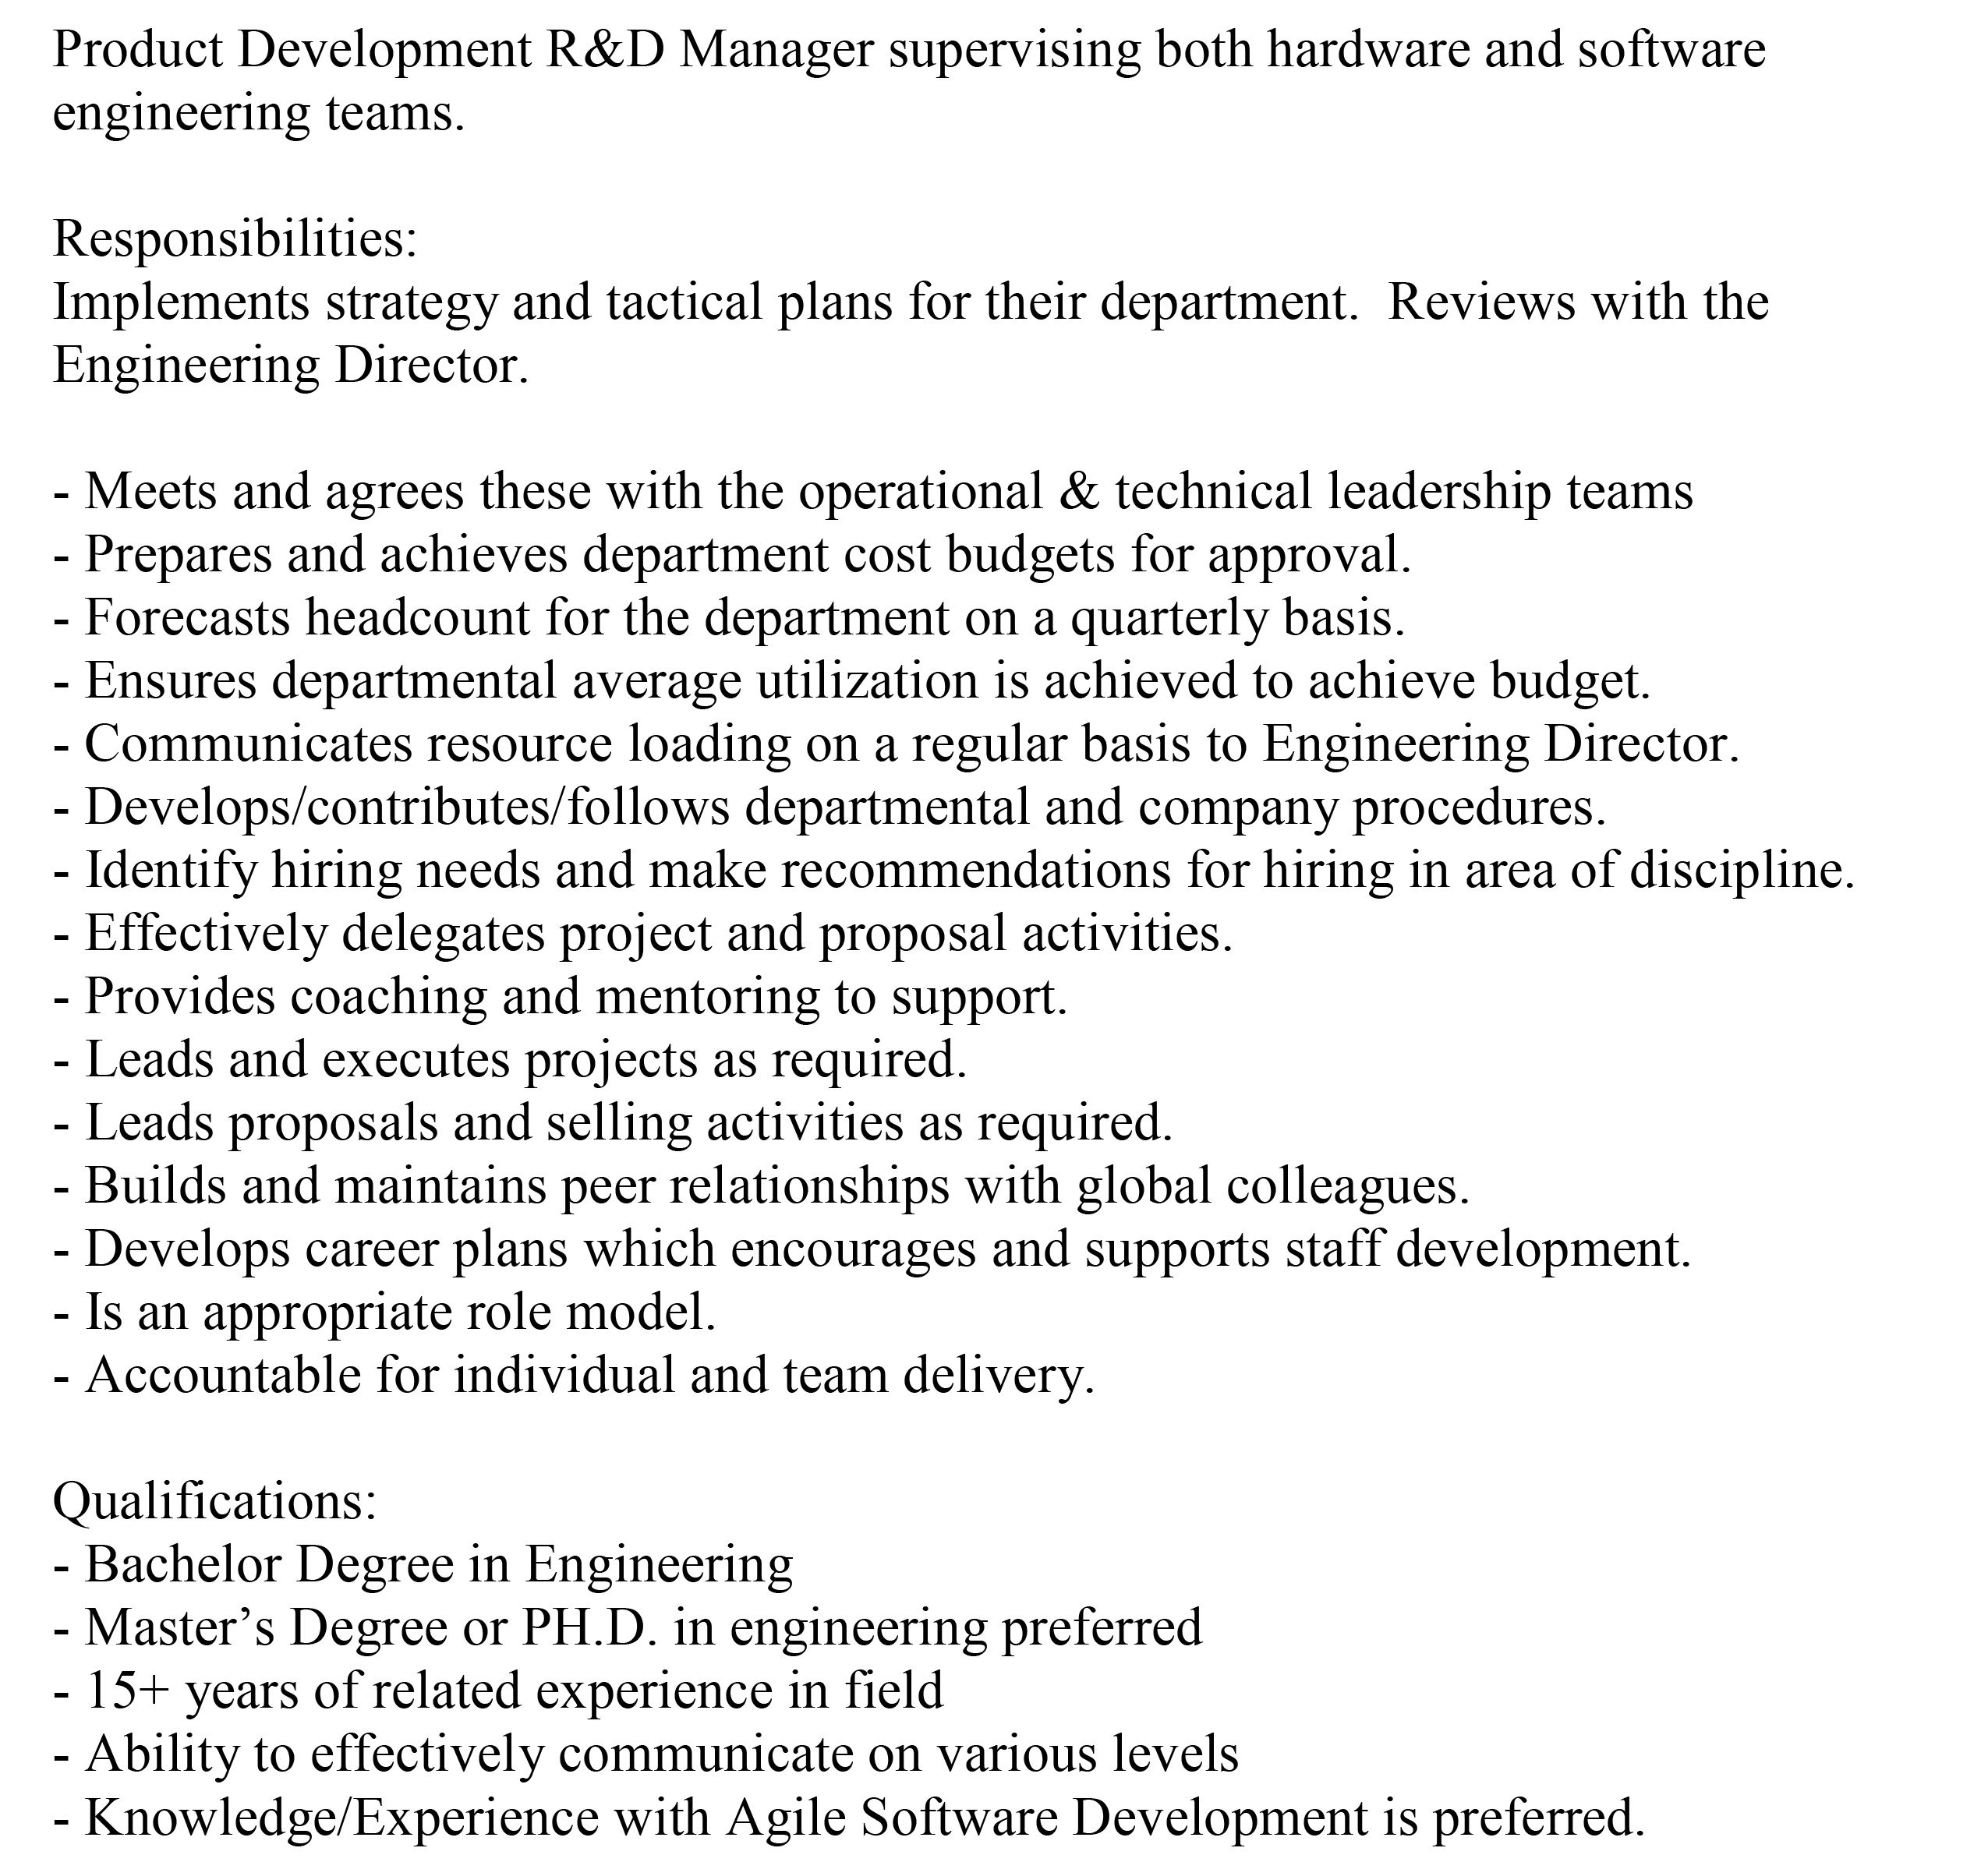 skill area manager if you are interested in this position please skill area manager if you are interested in this position please email your resume to dryan